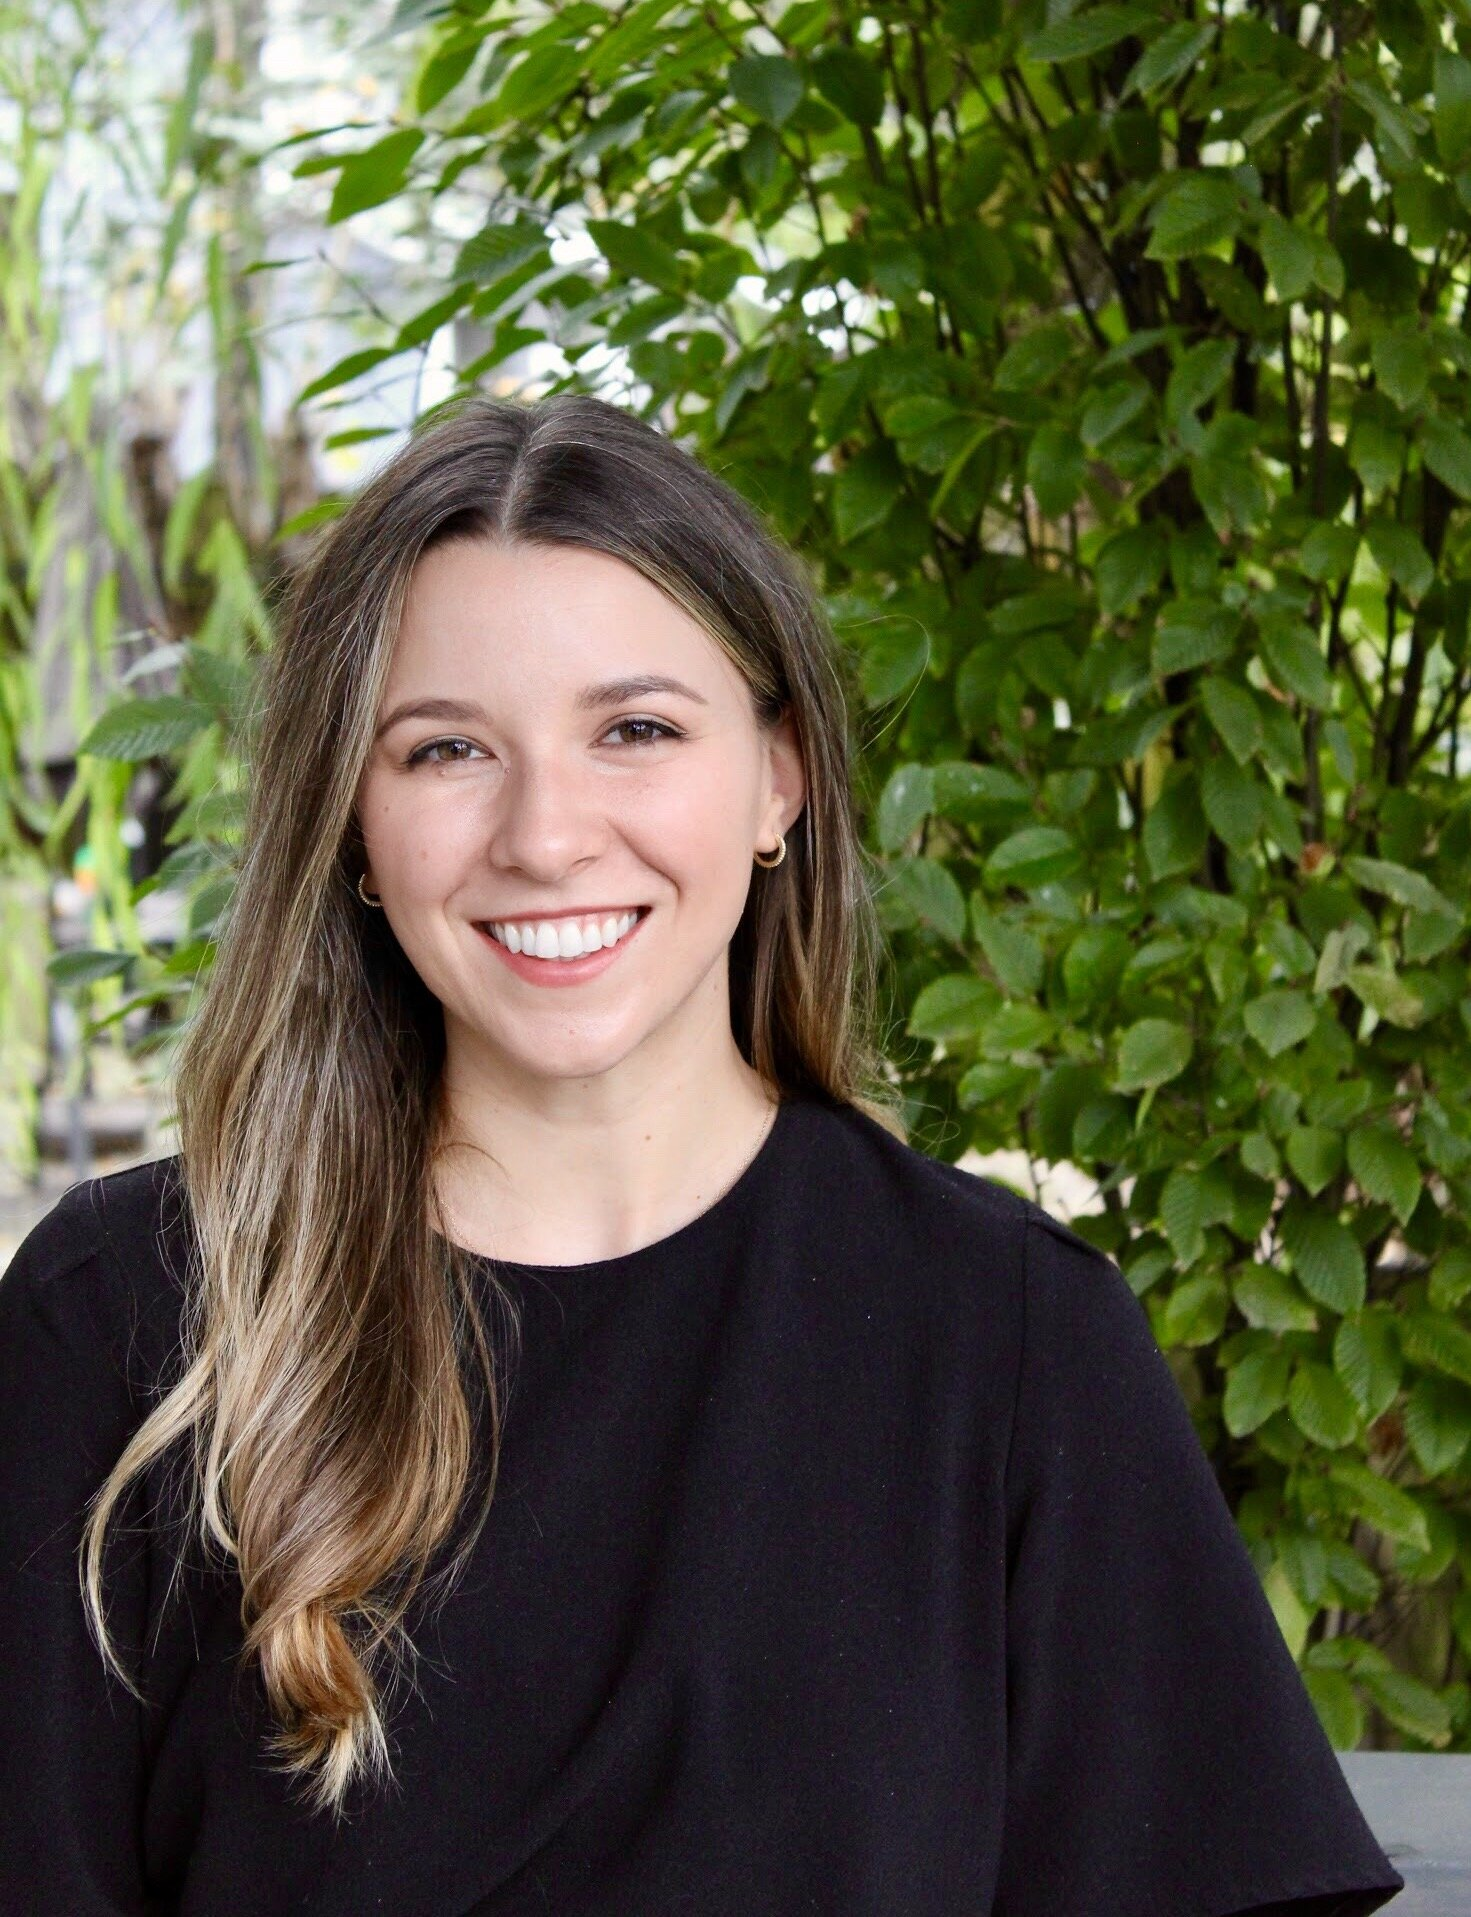 Kaitlyn Kownacki, RDN, LDN - Kaitlyn is a Registered Dietitian (RDN) and Nutrition Therapist. She partners with clients to achieve their authentic health, taking into account both the external world of nutrition science and also individuals' internal cues, intuition, and emotional well-being.